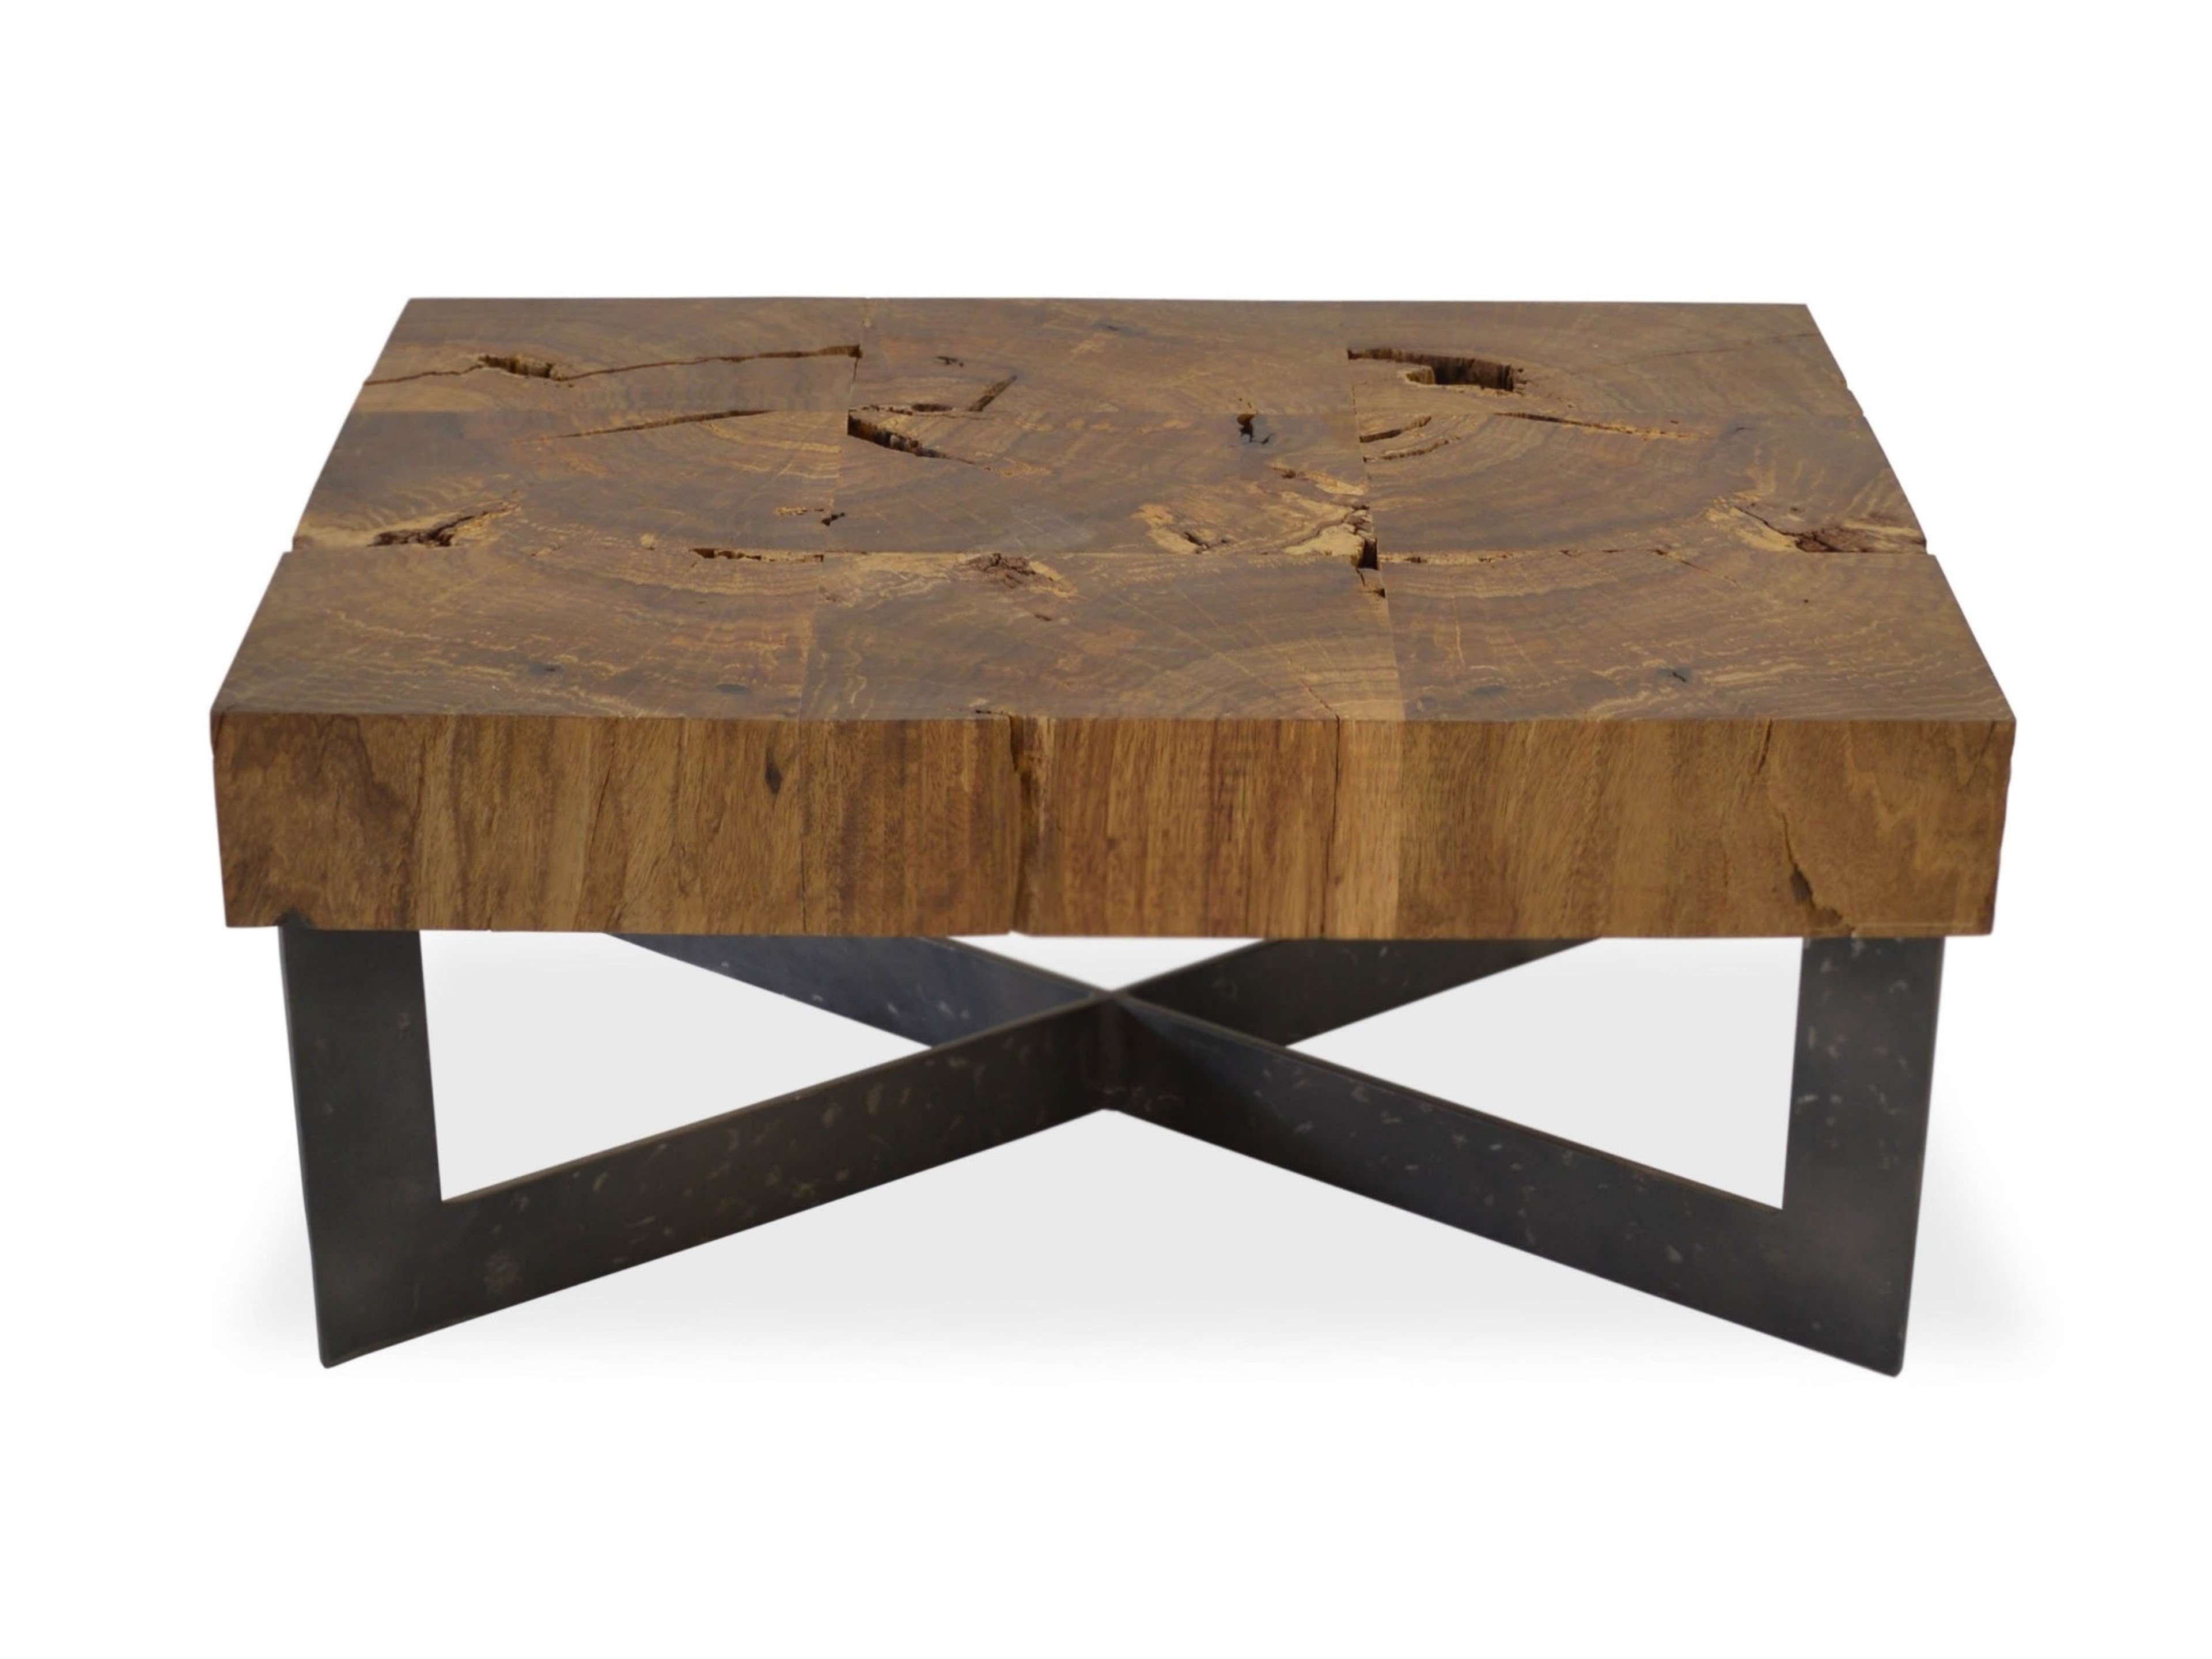 Most Recent Cheap Wood Coffee Tables Intended For Coffee Tables : Bobs Furniture Coffee Table Tables Set Ideas Roy (View 11 of 20)